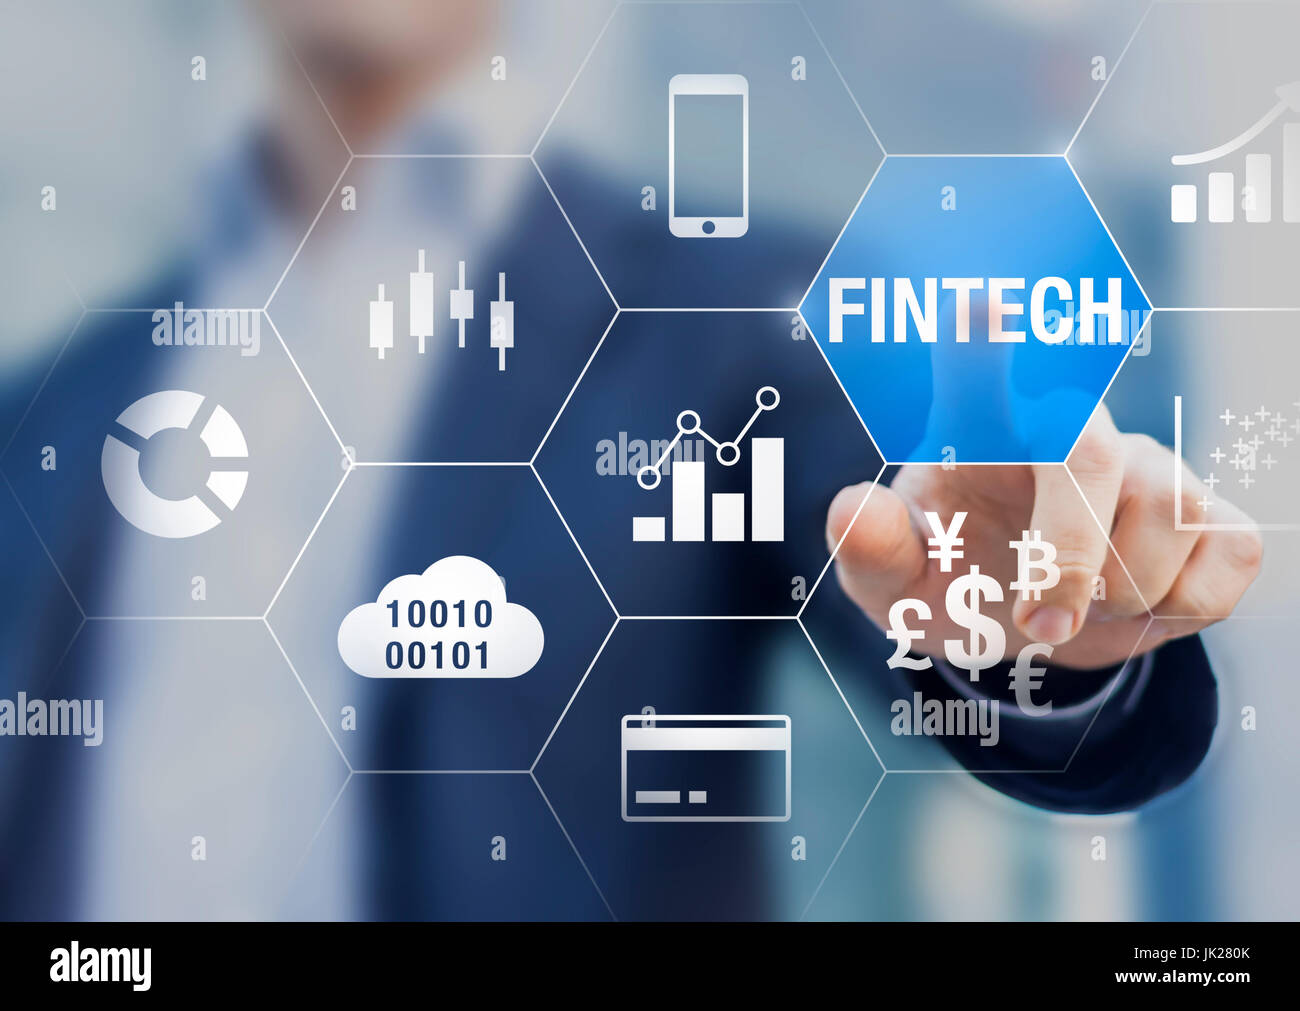 Businessman using fintech (financial technology) with connected icons of business intelligence (BI) charts, cloud Stock Photo